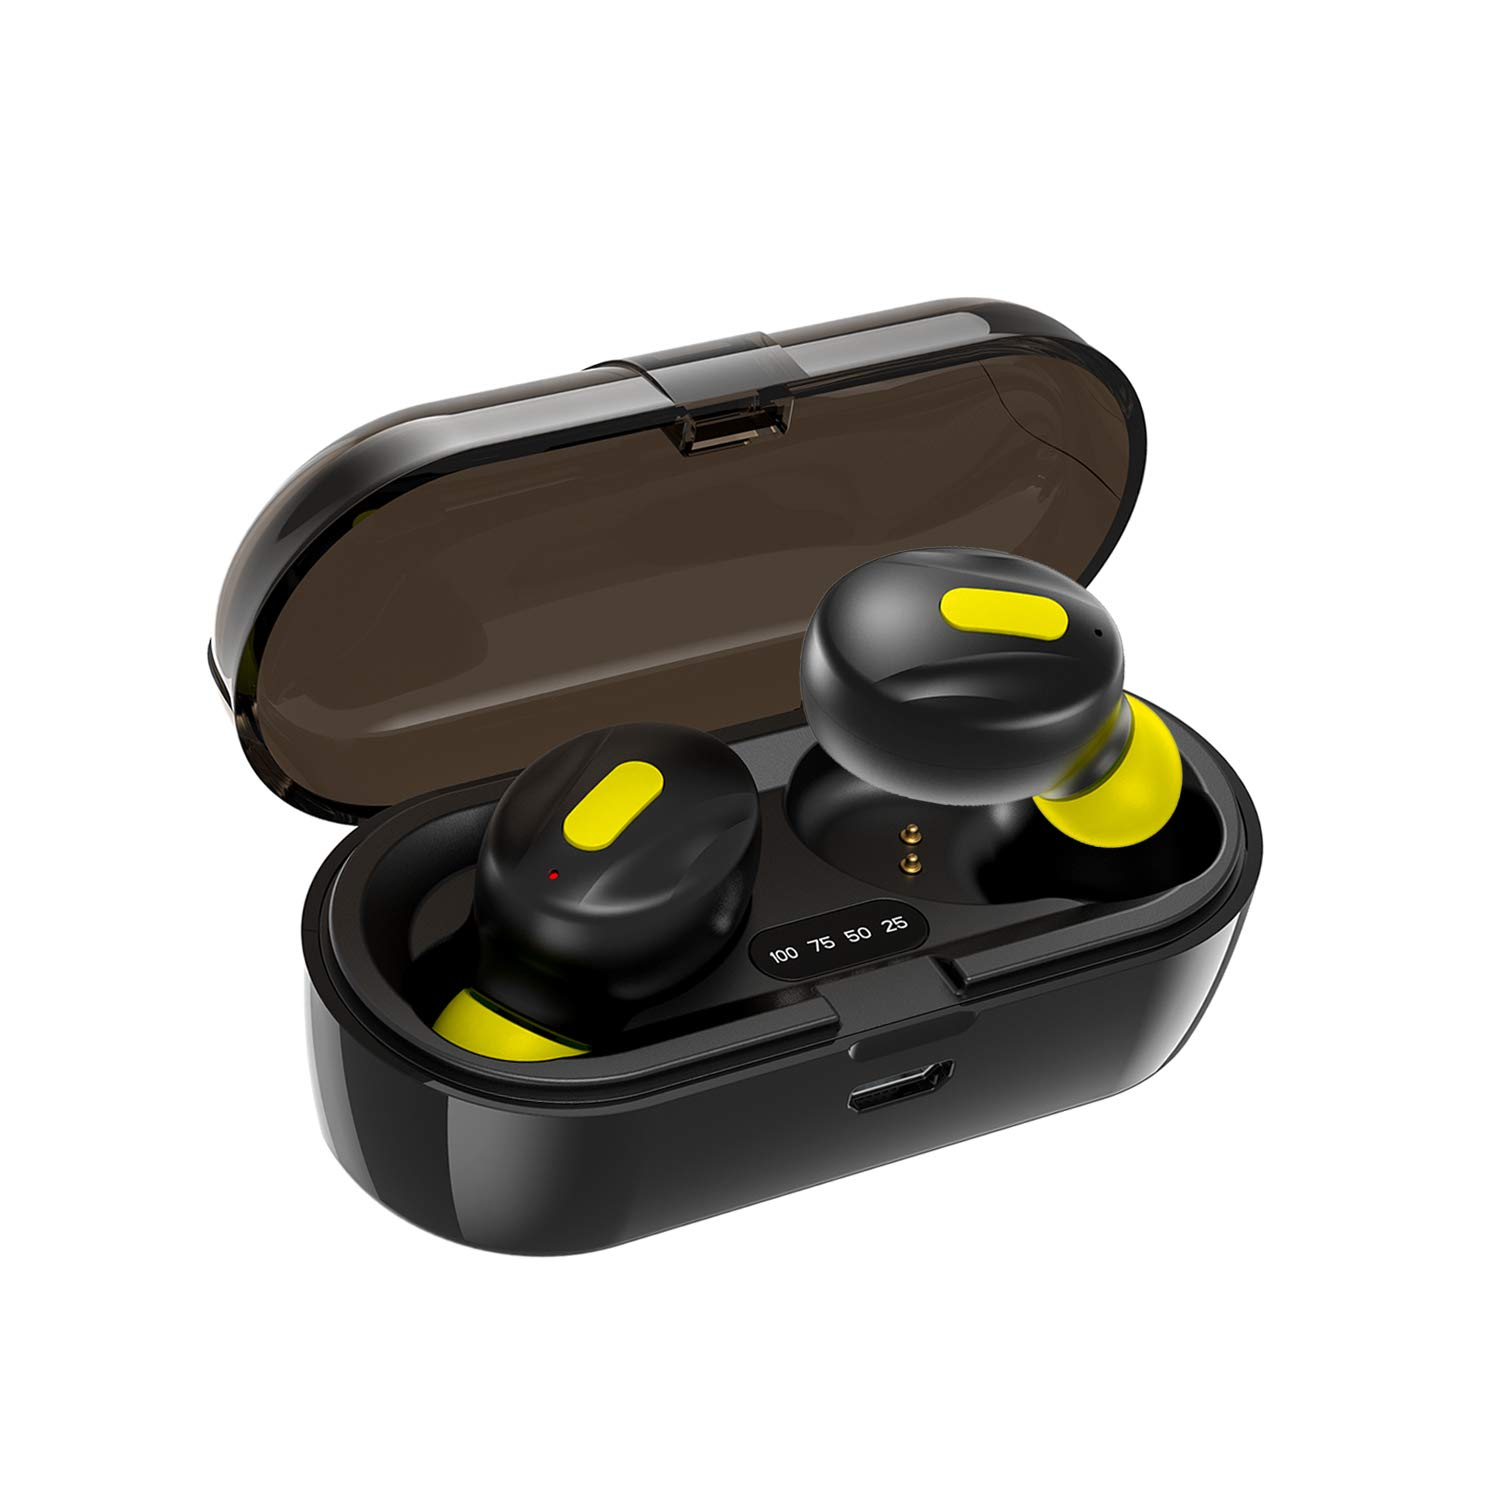 WeCool Moonwalk Mini TWS Bluetooth Earbuds for ₹699